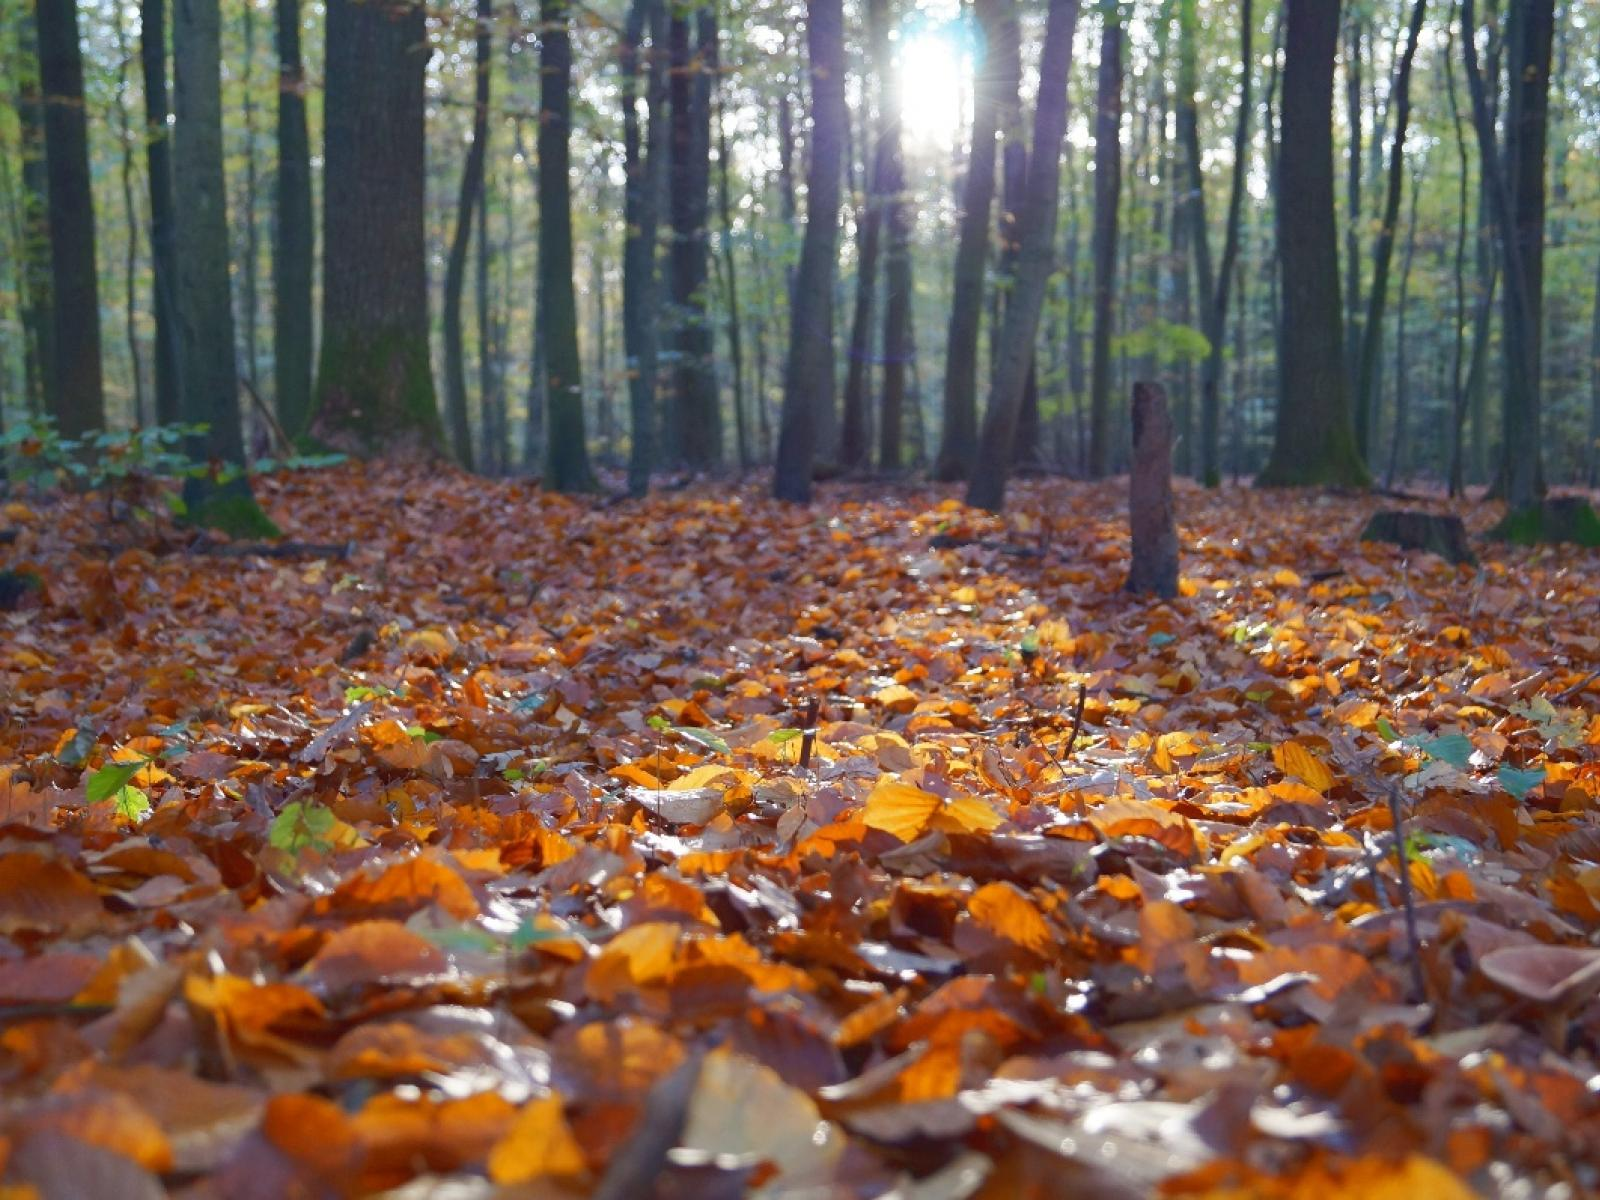 Dead leaves are a common source of carbon